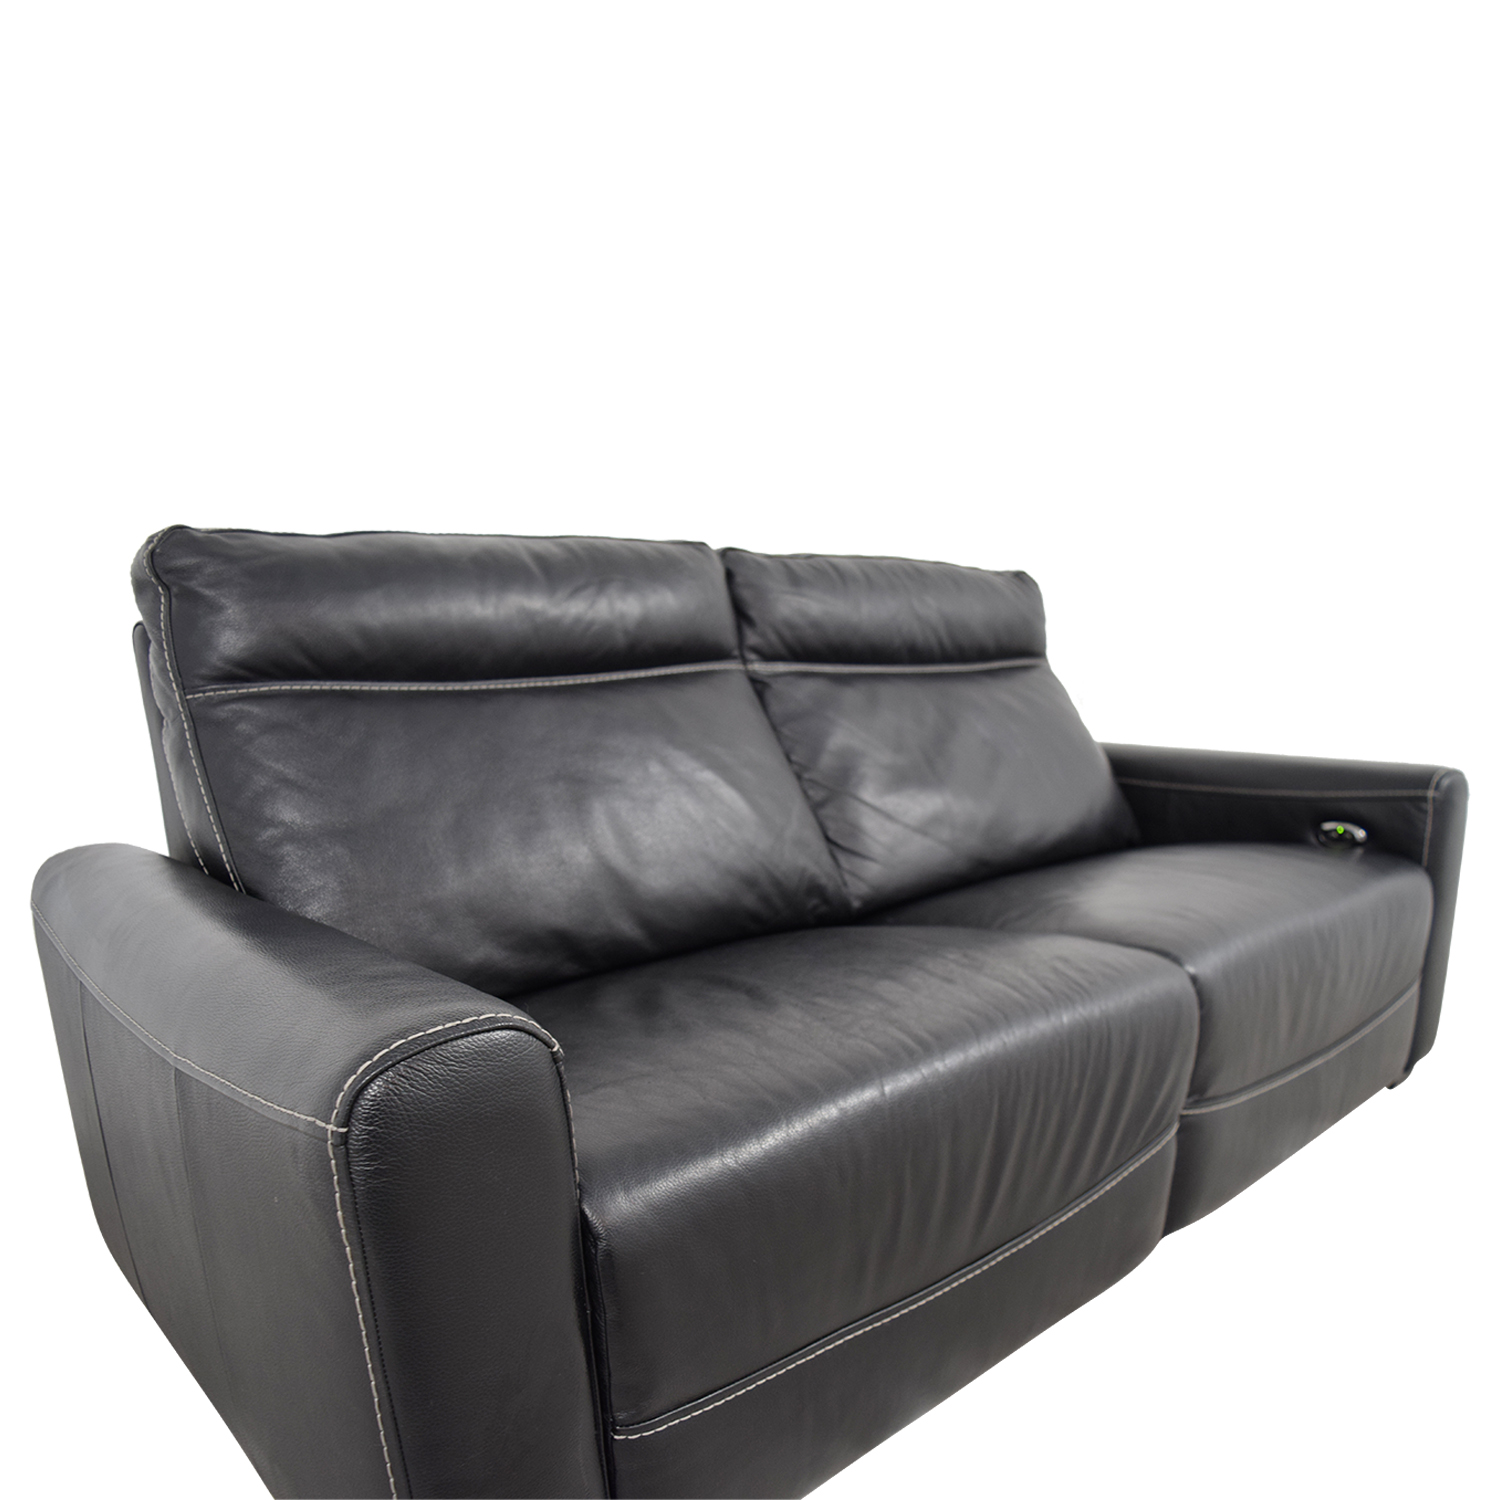 80% OFF - Macy\'s Macy\'s Black Leather Reclining Sofa / Sofas